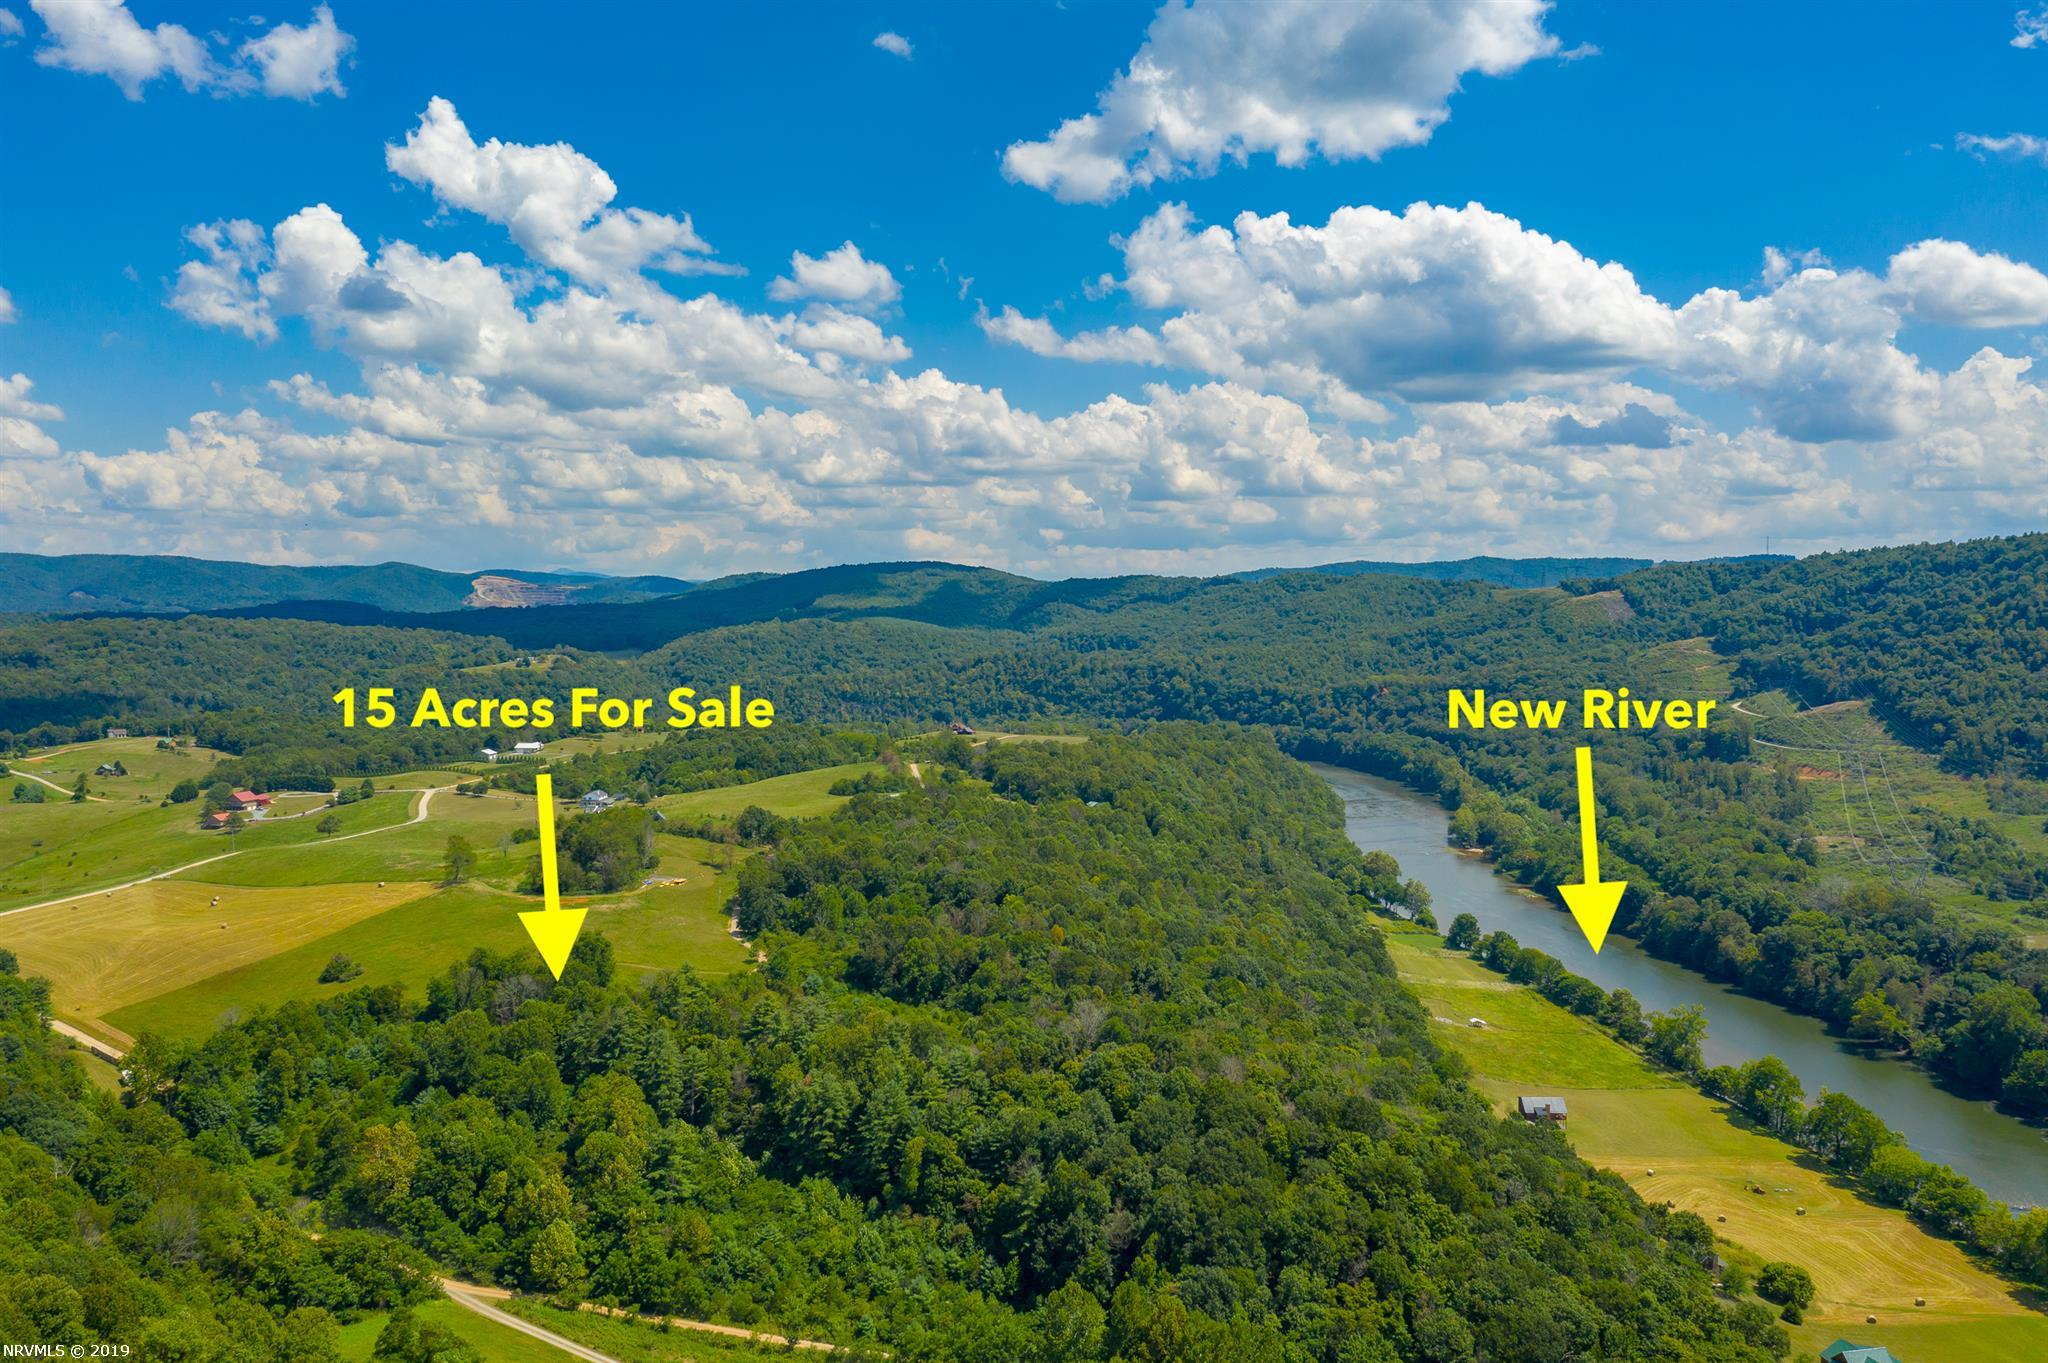 Nudged right against the New River is this remarkable 15 acre property. The land is both open and wooded, so you have a variety of ways to build your dream home. Access to the river is deeded via the River Hills community area, making this an exclusive point of the New River that you'll feel you can call your own. With unparalleled views and located only a short drive from great shopping and amenities, this land is versatile and ready for your creativity. Set up an appointment to look at it today!